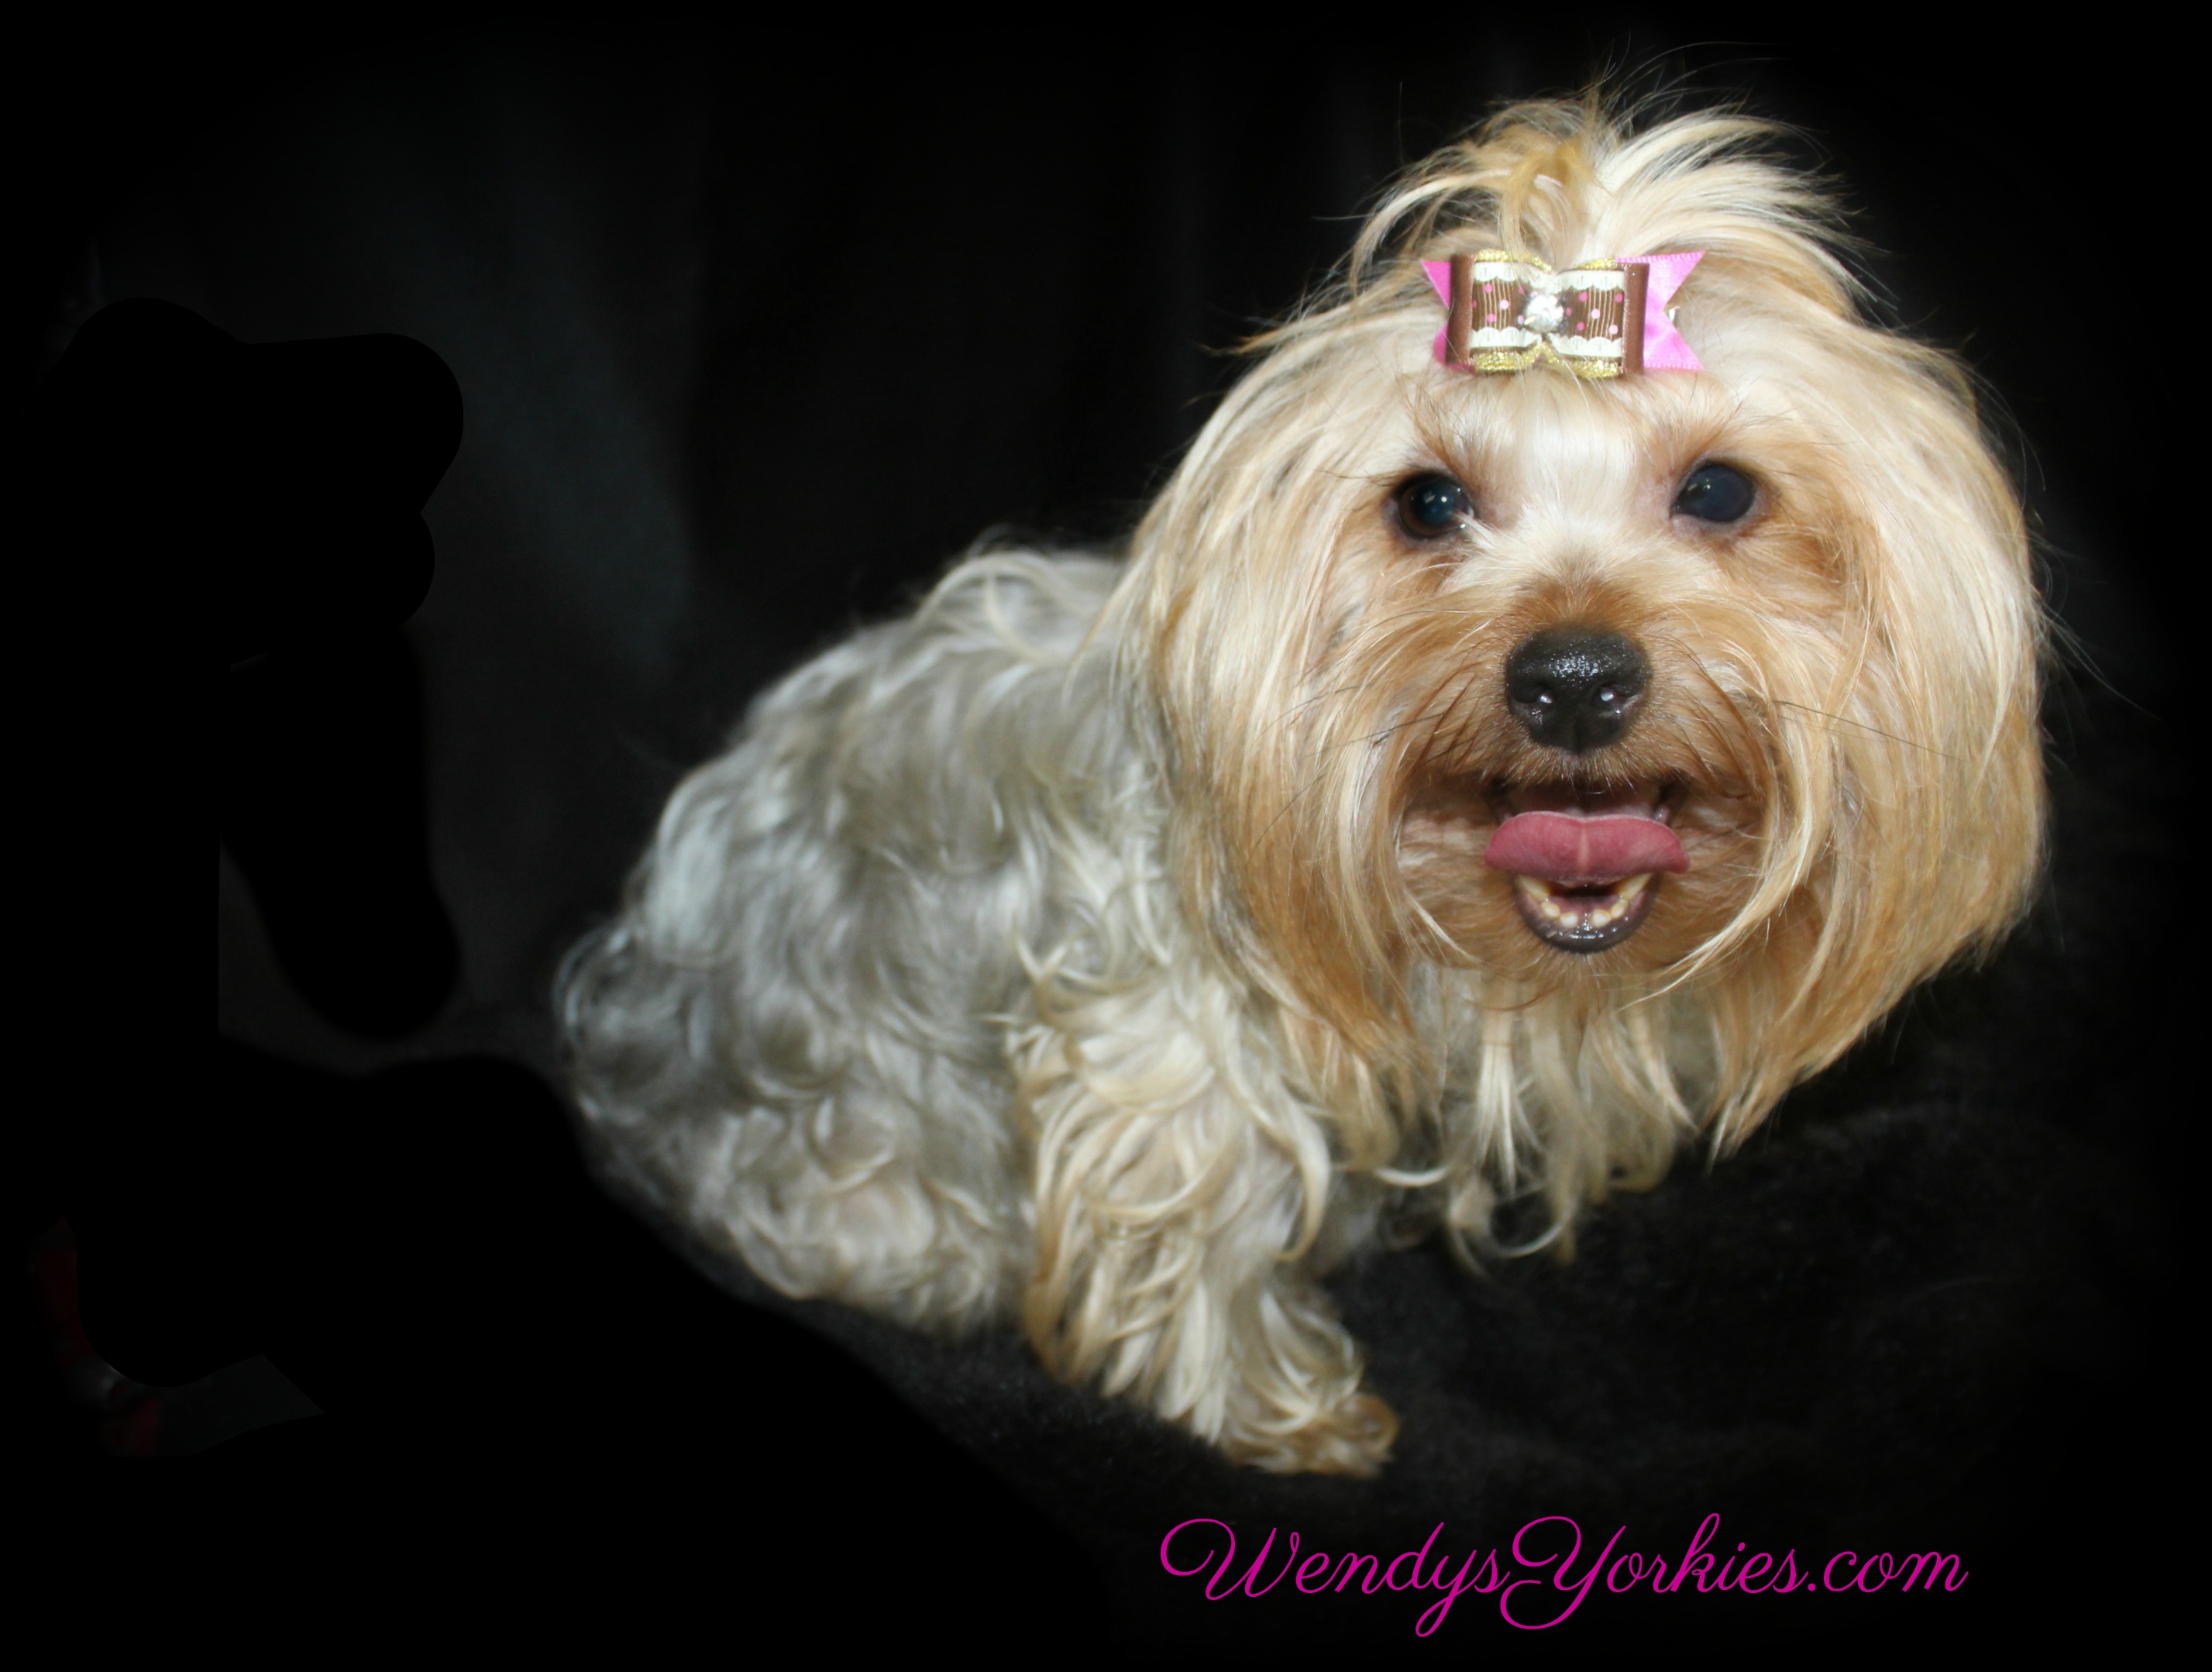 WendysYorkies.com, Yorkie puppy breeder in Texas